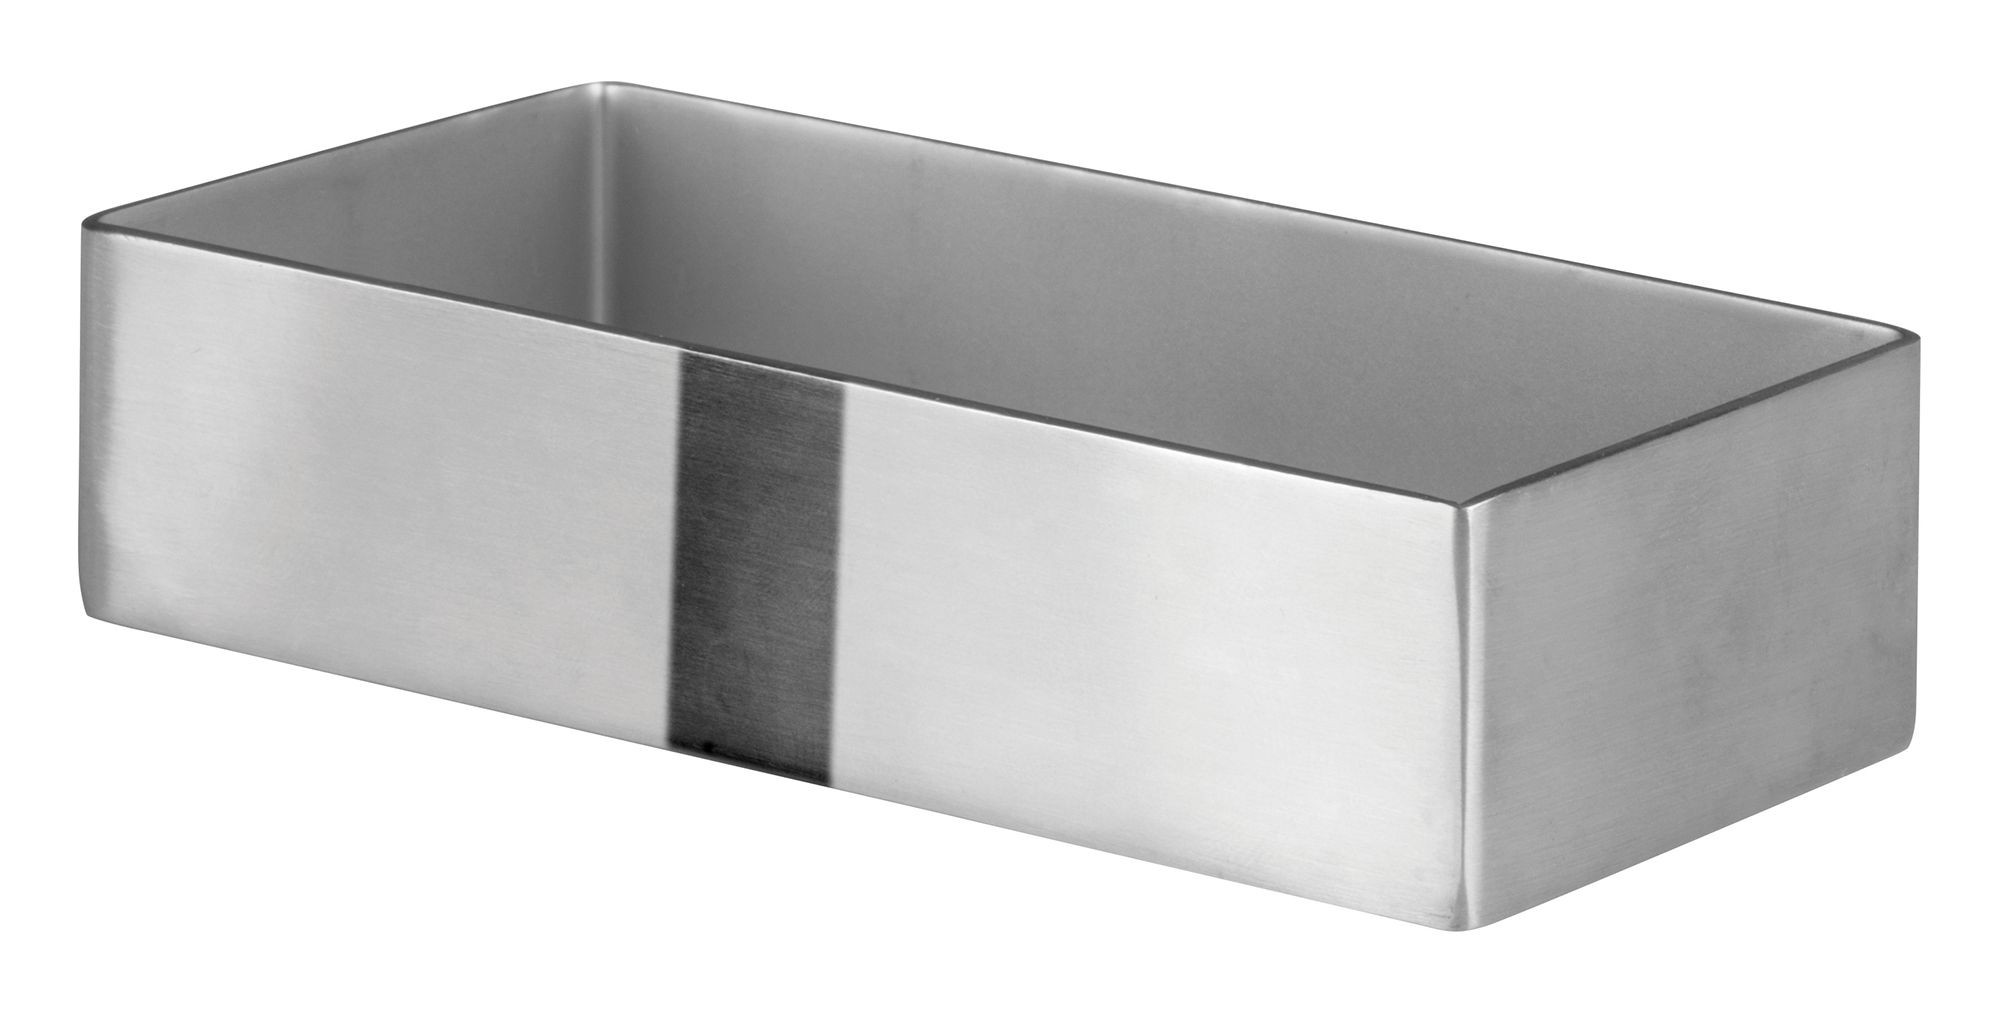 "Winco DDSG-101S Stainless Steel Rectangular 3-3/16"" x 2-1/2"" Sugar Packet Holder"